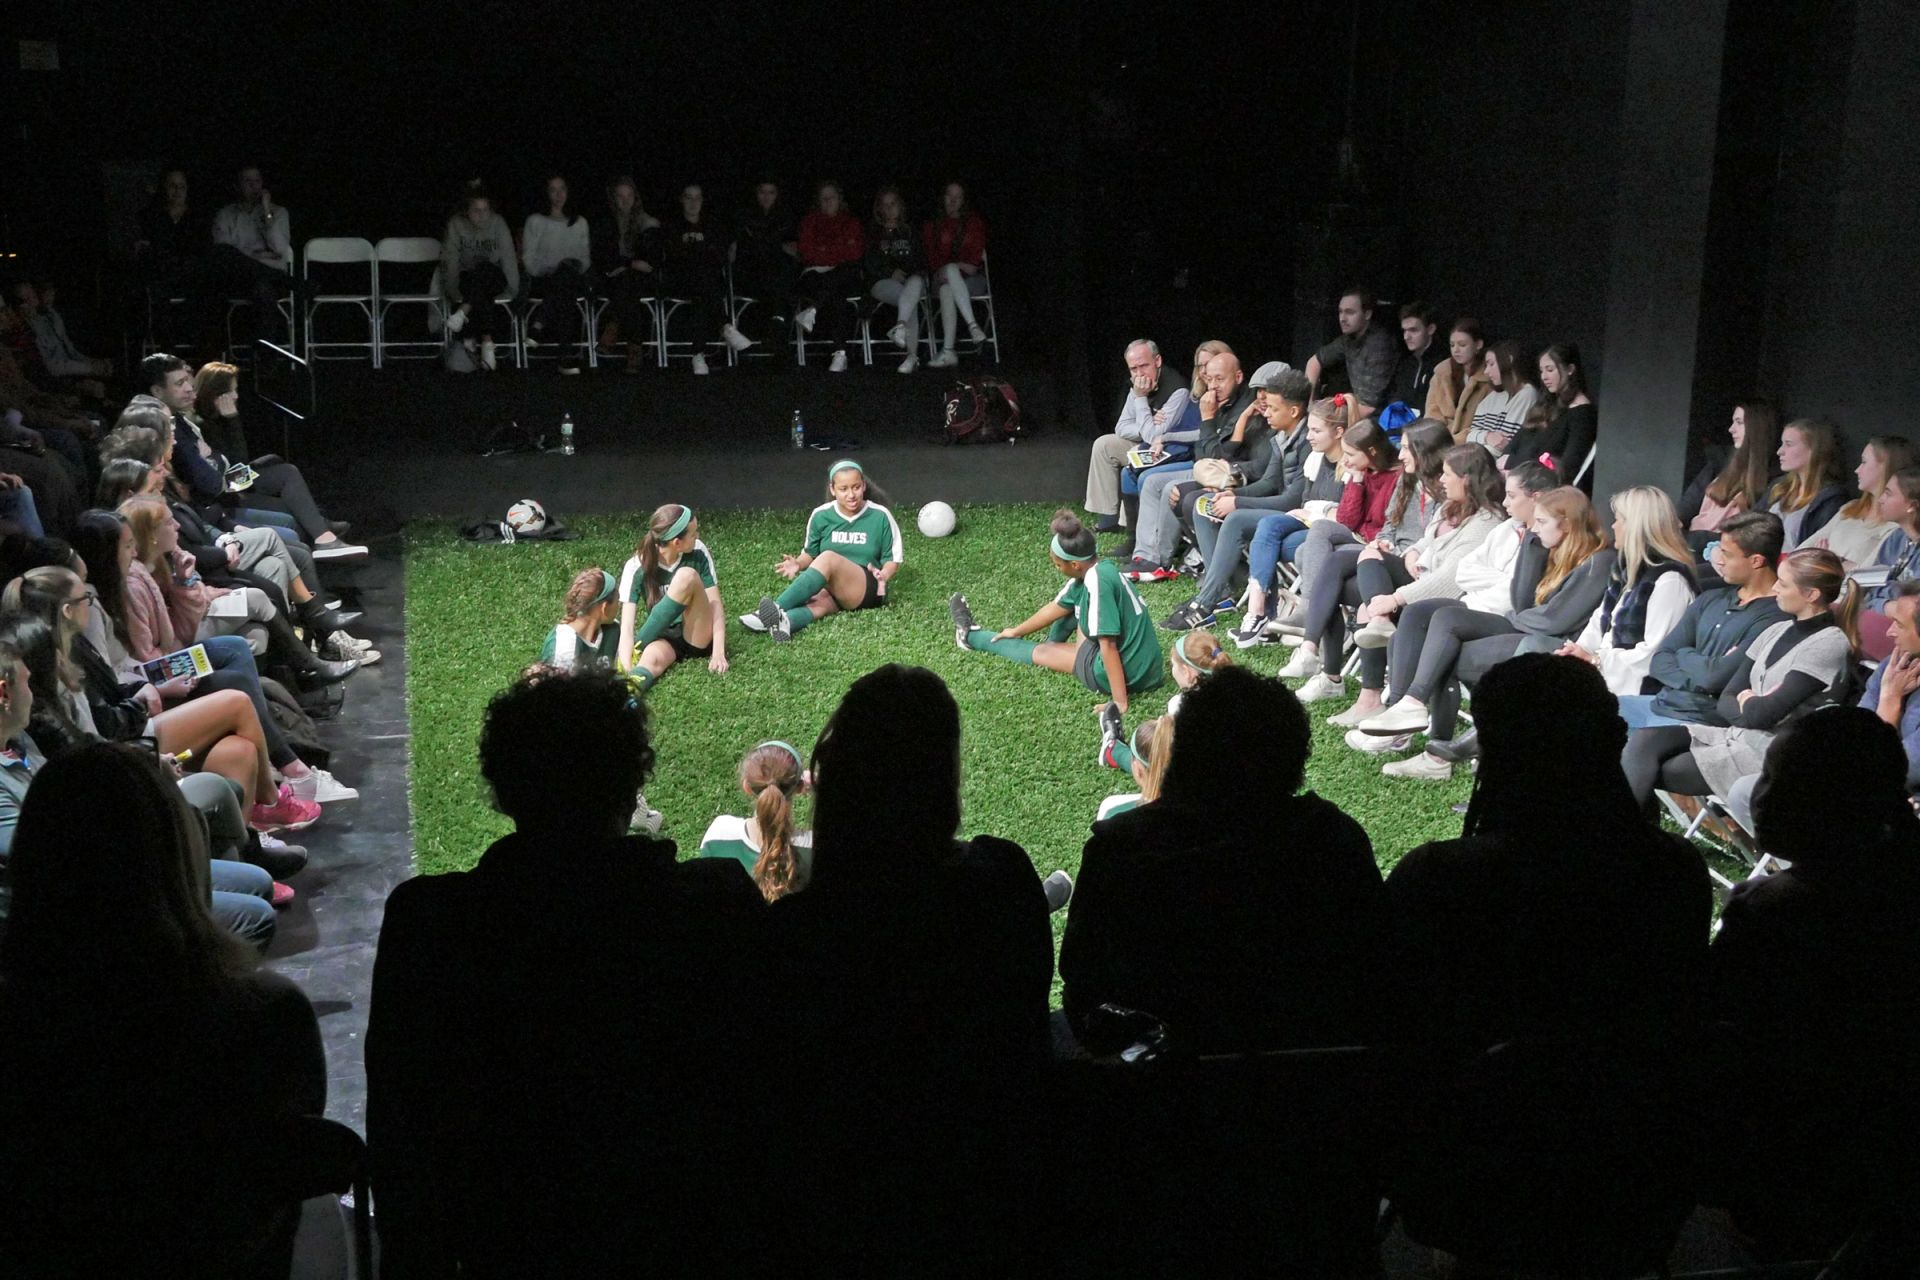 St. Luke's Wyckoff Family Black Box Theater was transformed into a turf field for